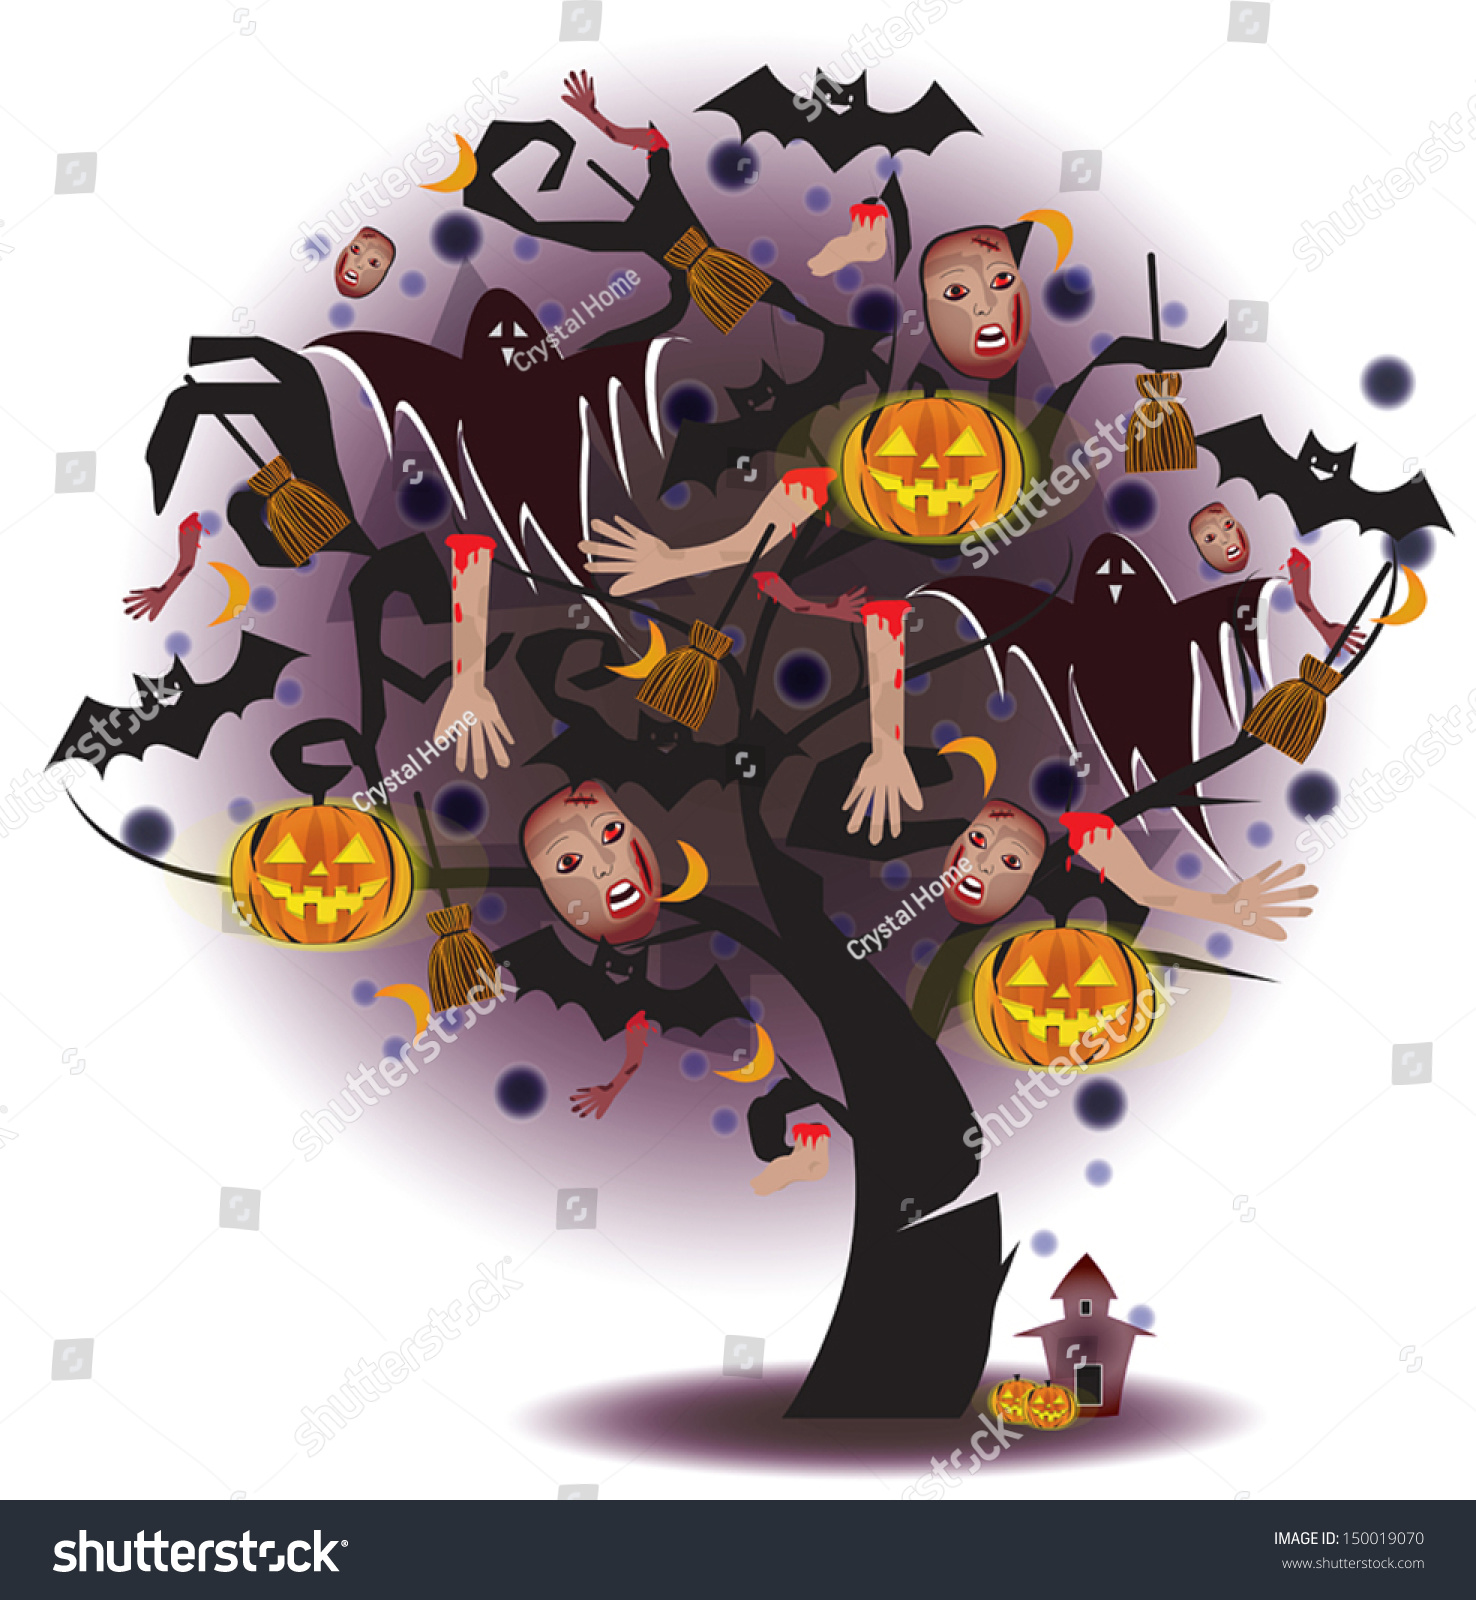 cartoon scary tree horror pumpkin ghost stock vector royalty free rh shutterstock com Scary Monster Clip Art Ghost Clip Art Black and White